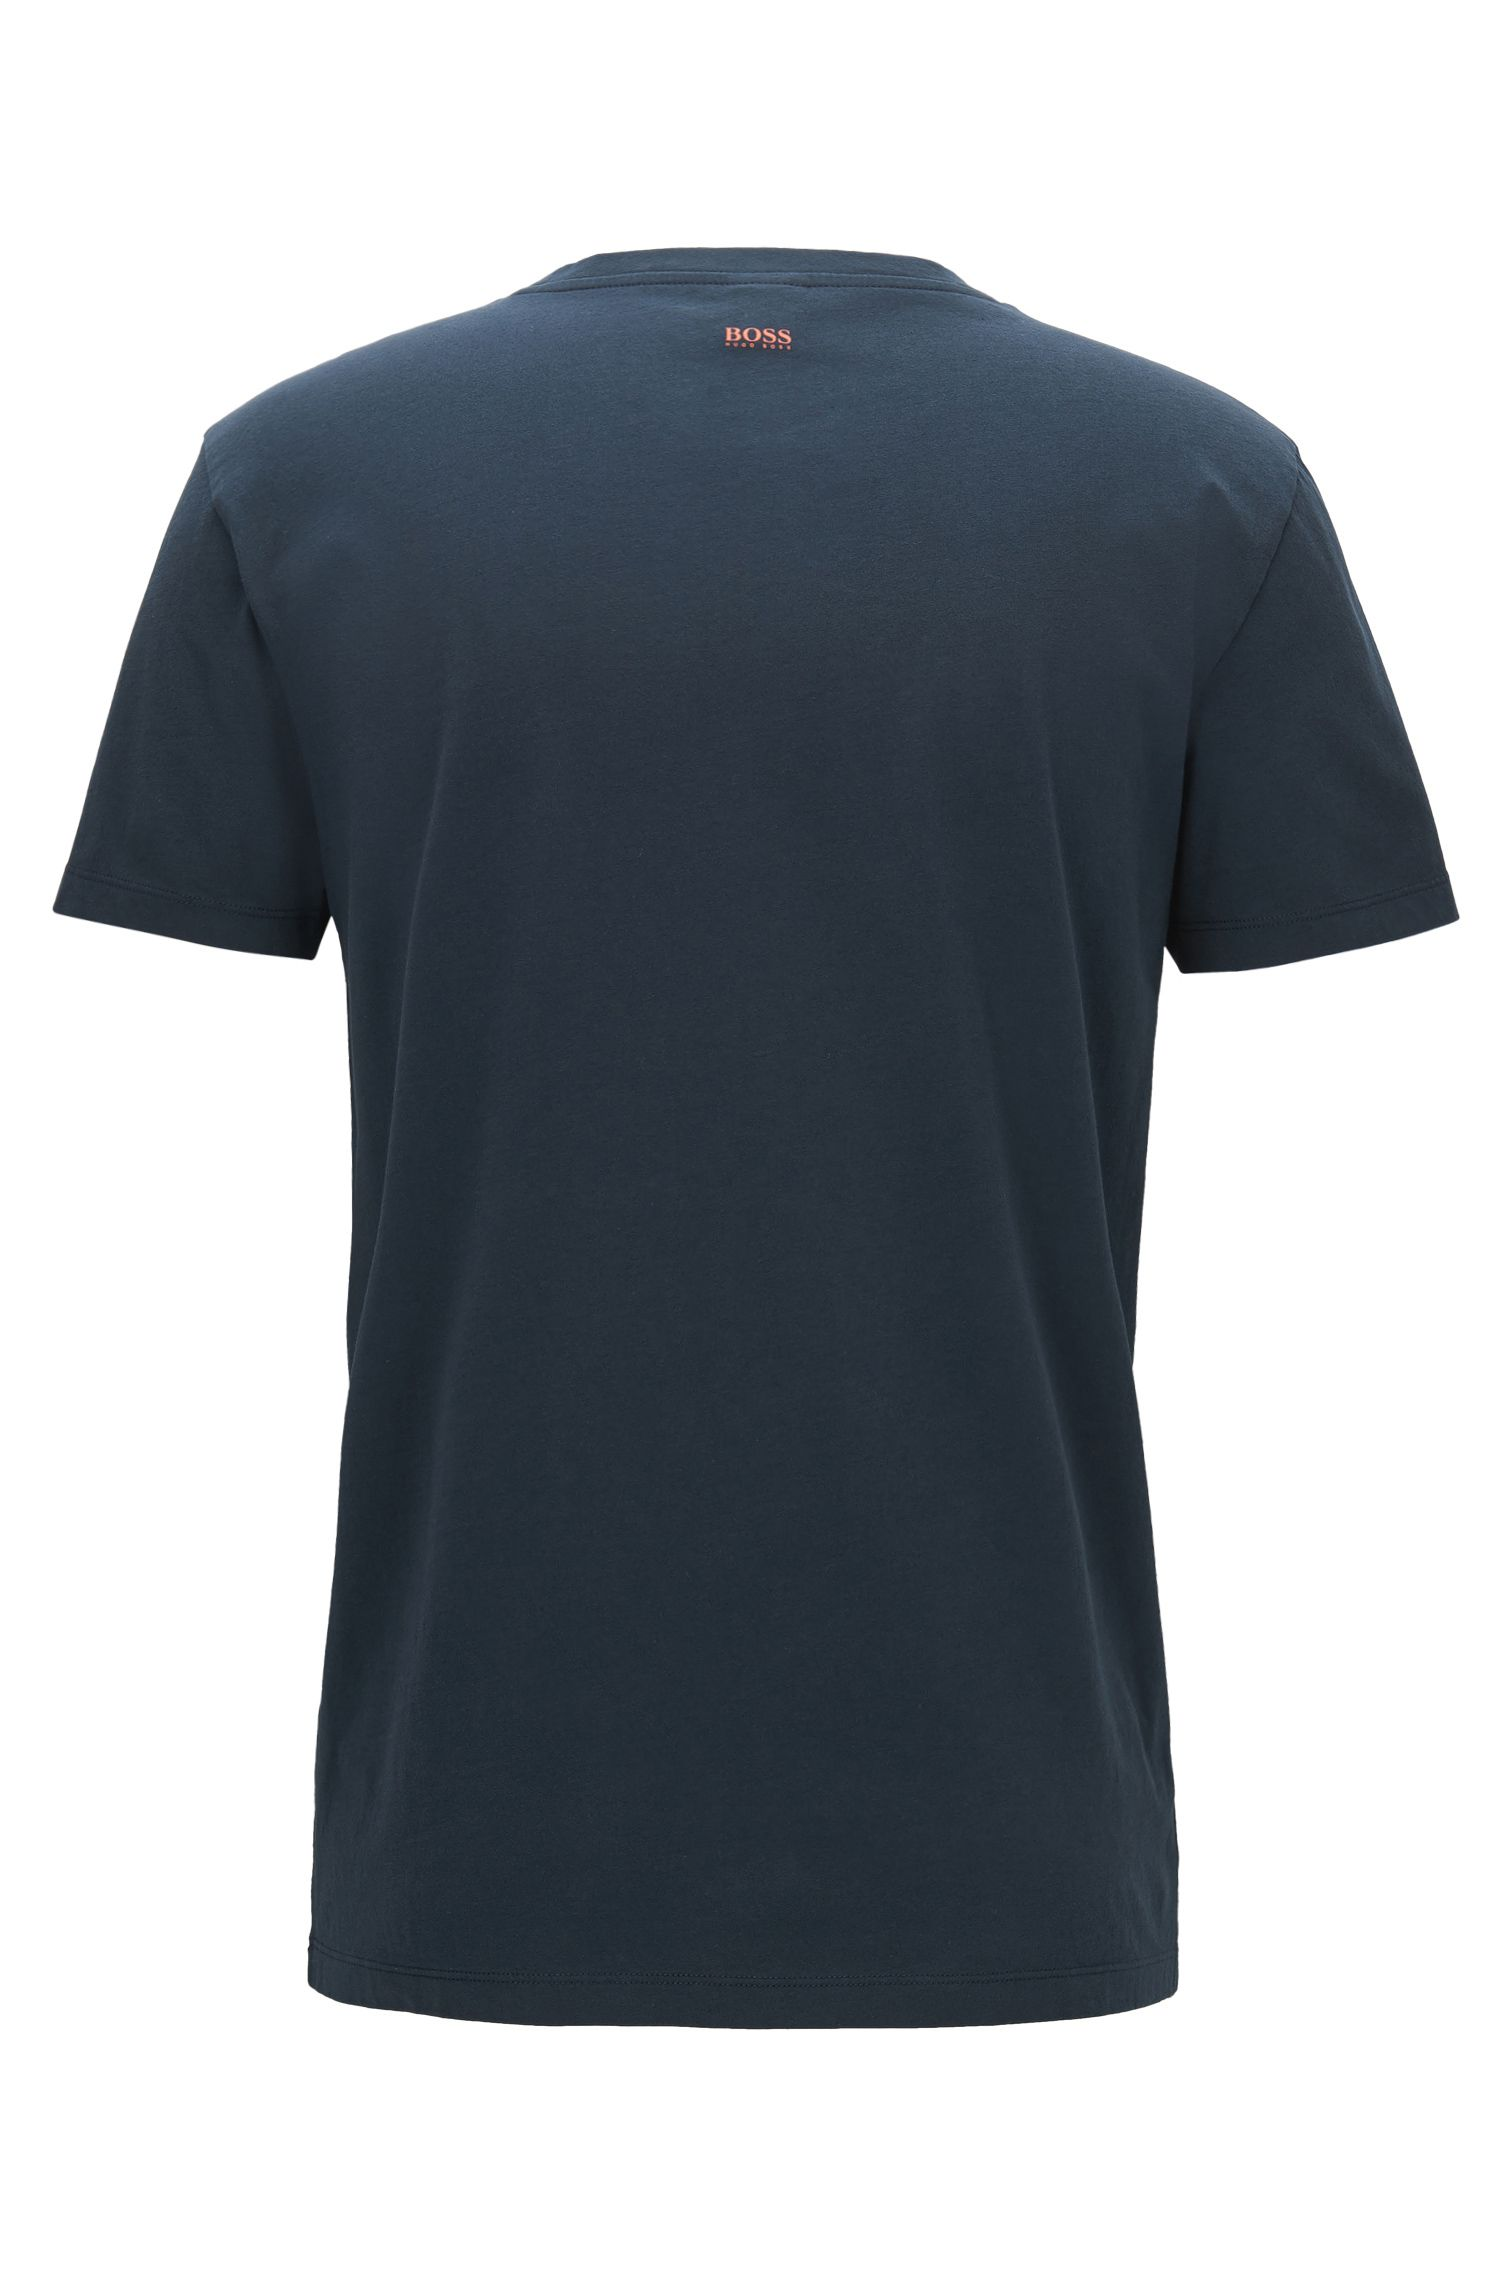 Regular-fit graphic-print T-shirt in washed cotton jersey